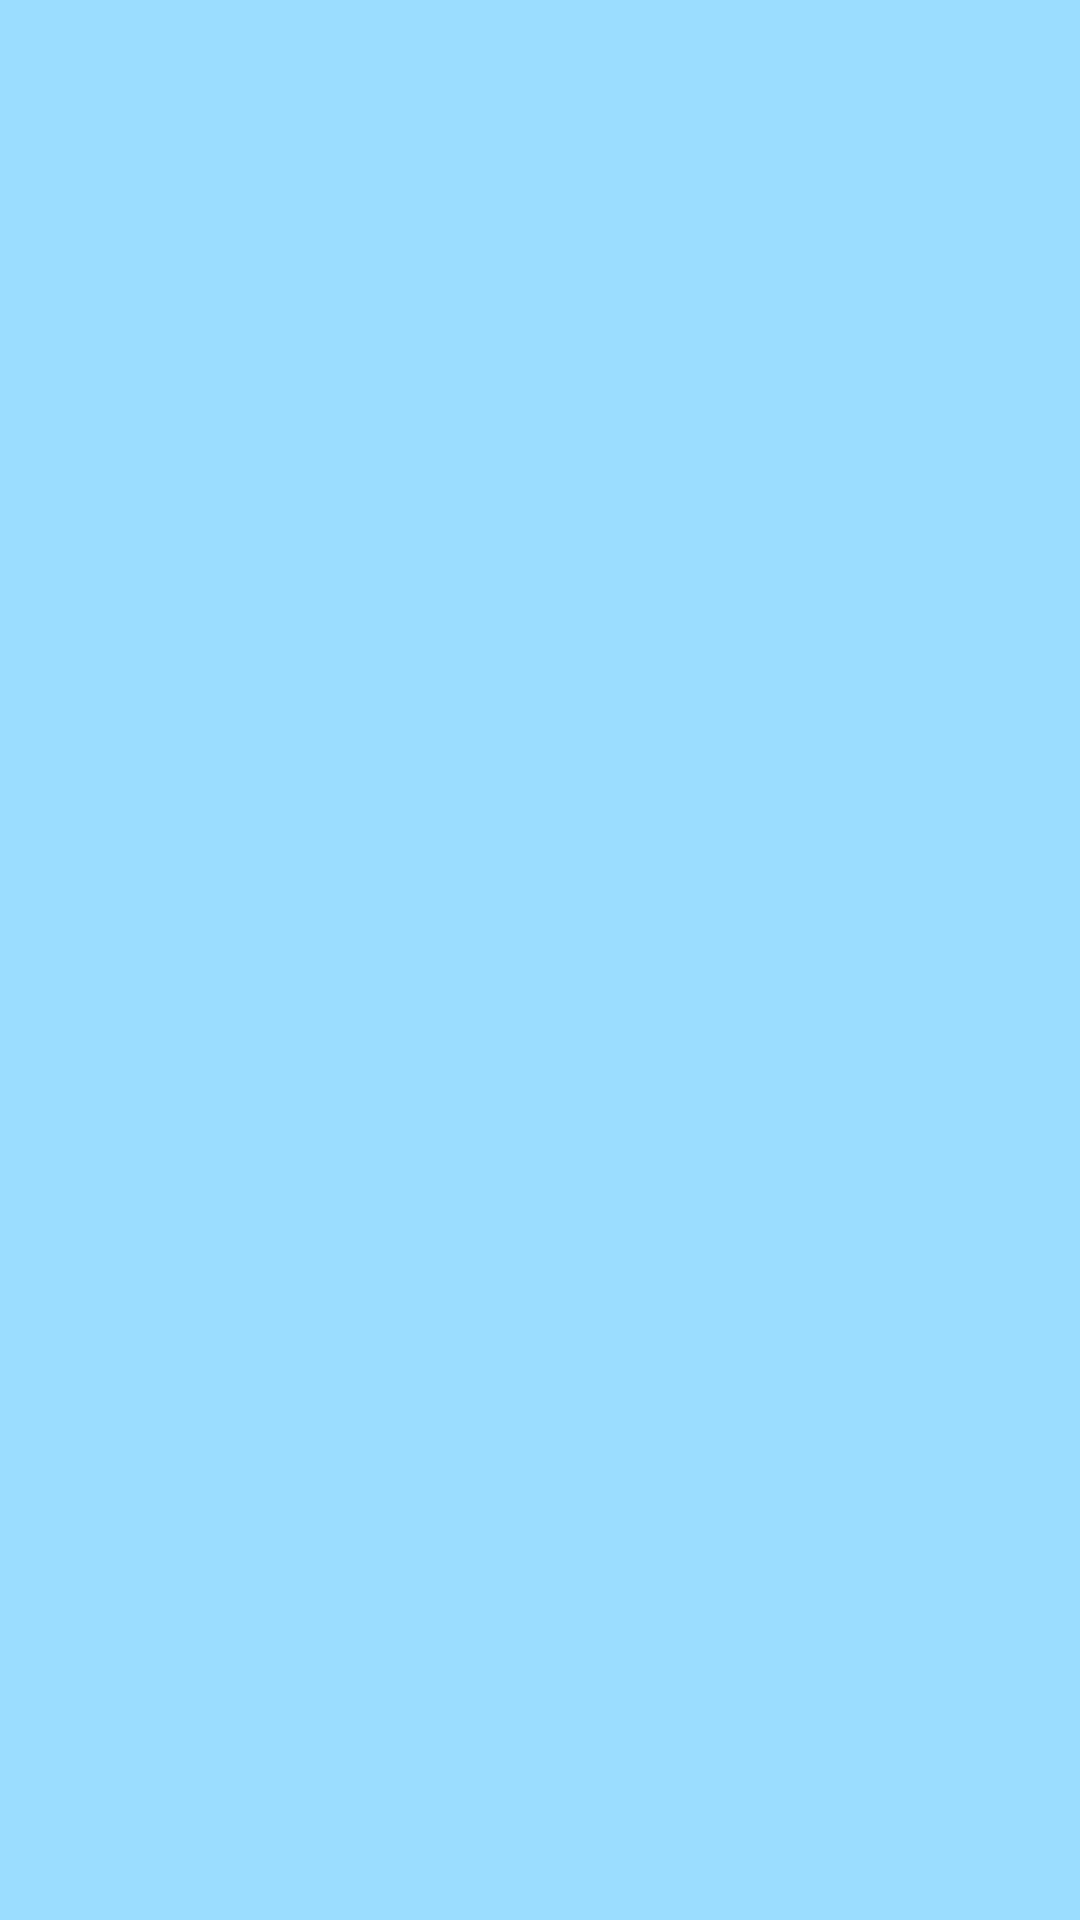 1080x1920 Columbia Blue Solid Color Background